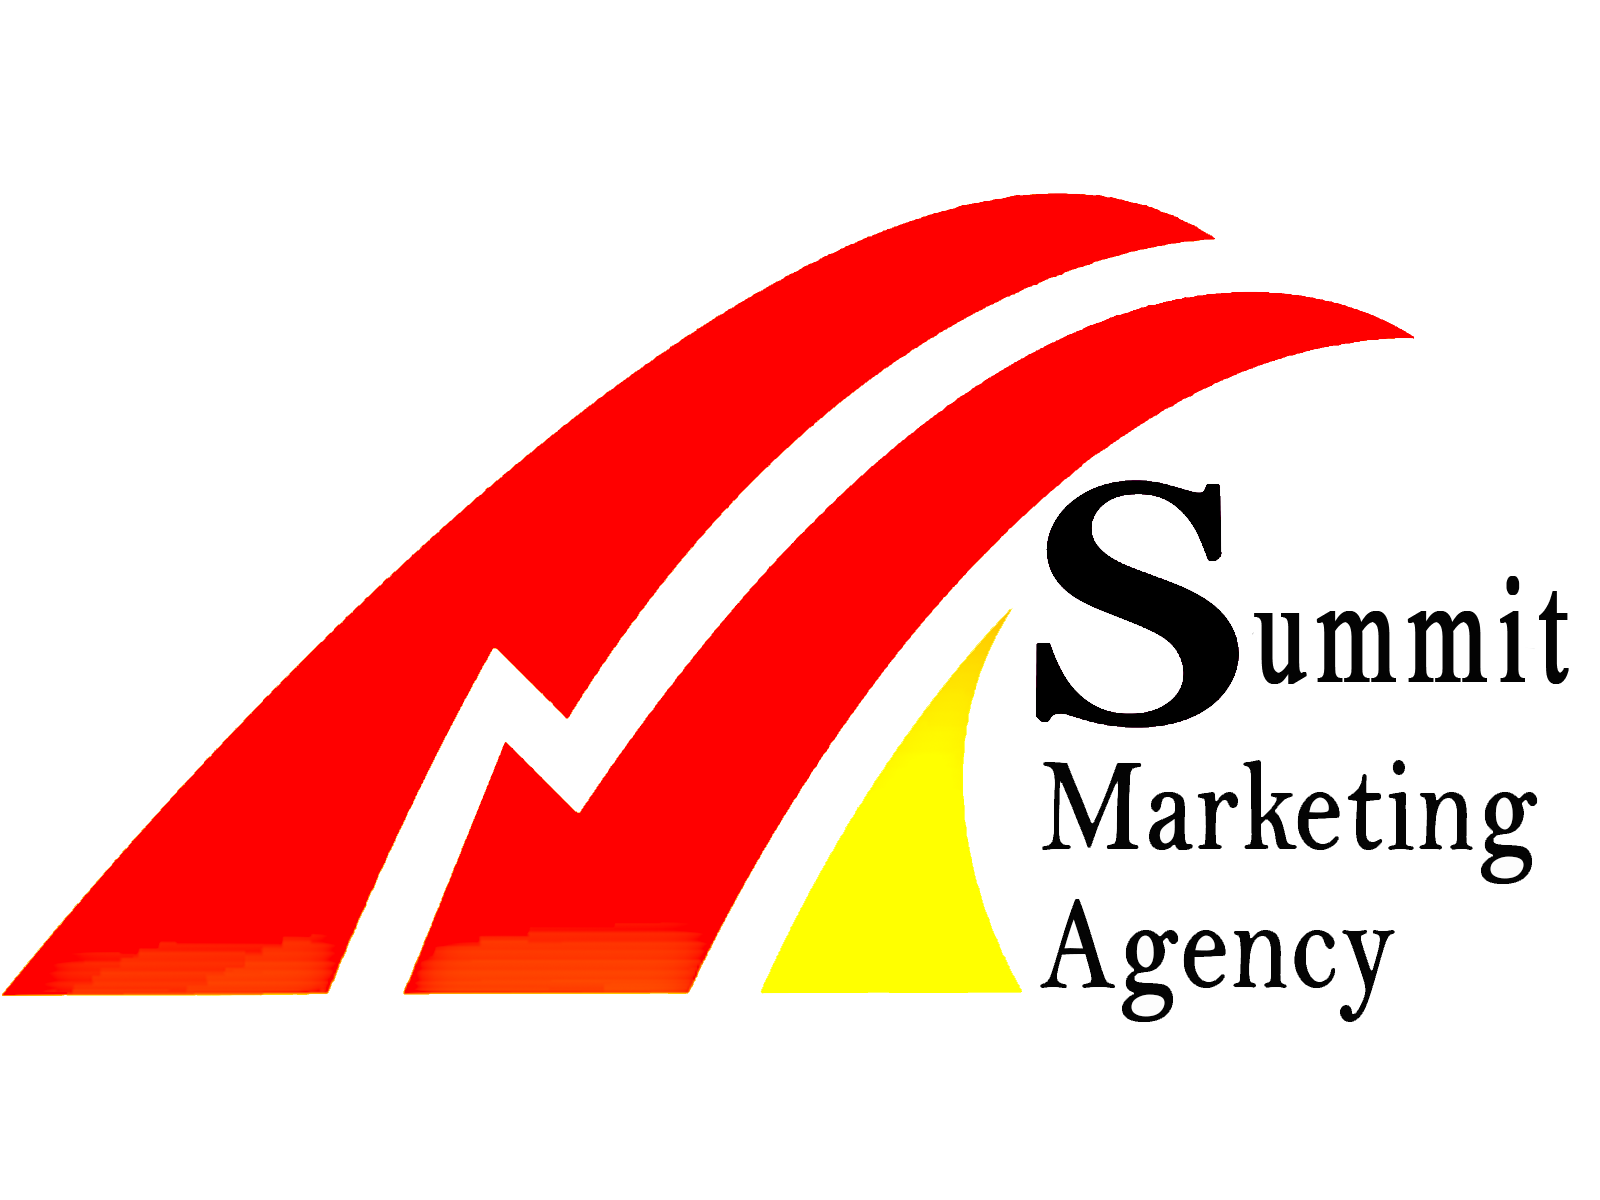 Summit Marketing Agency, Inc.